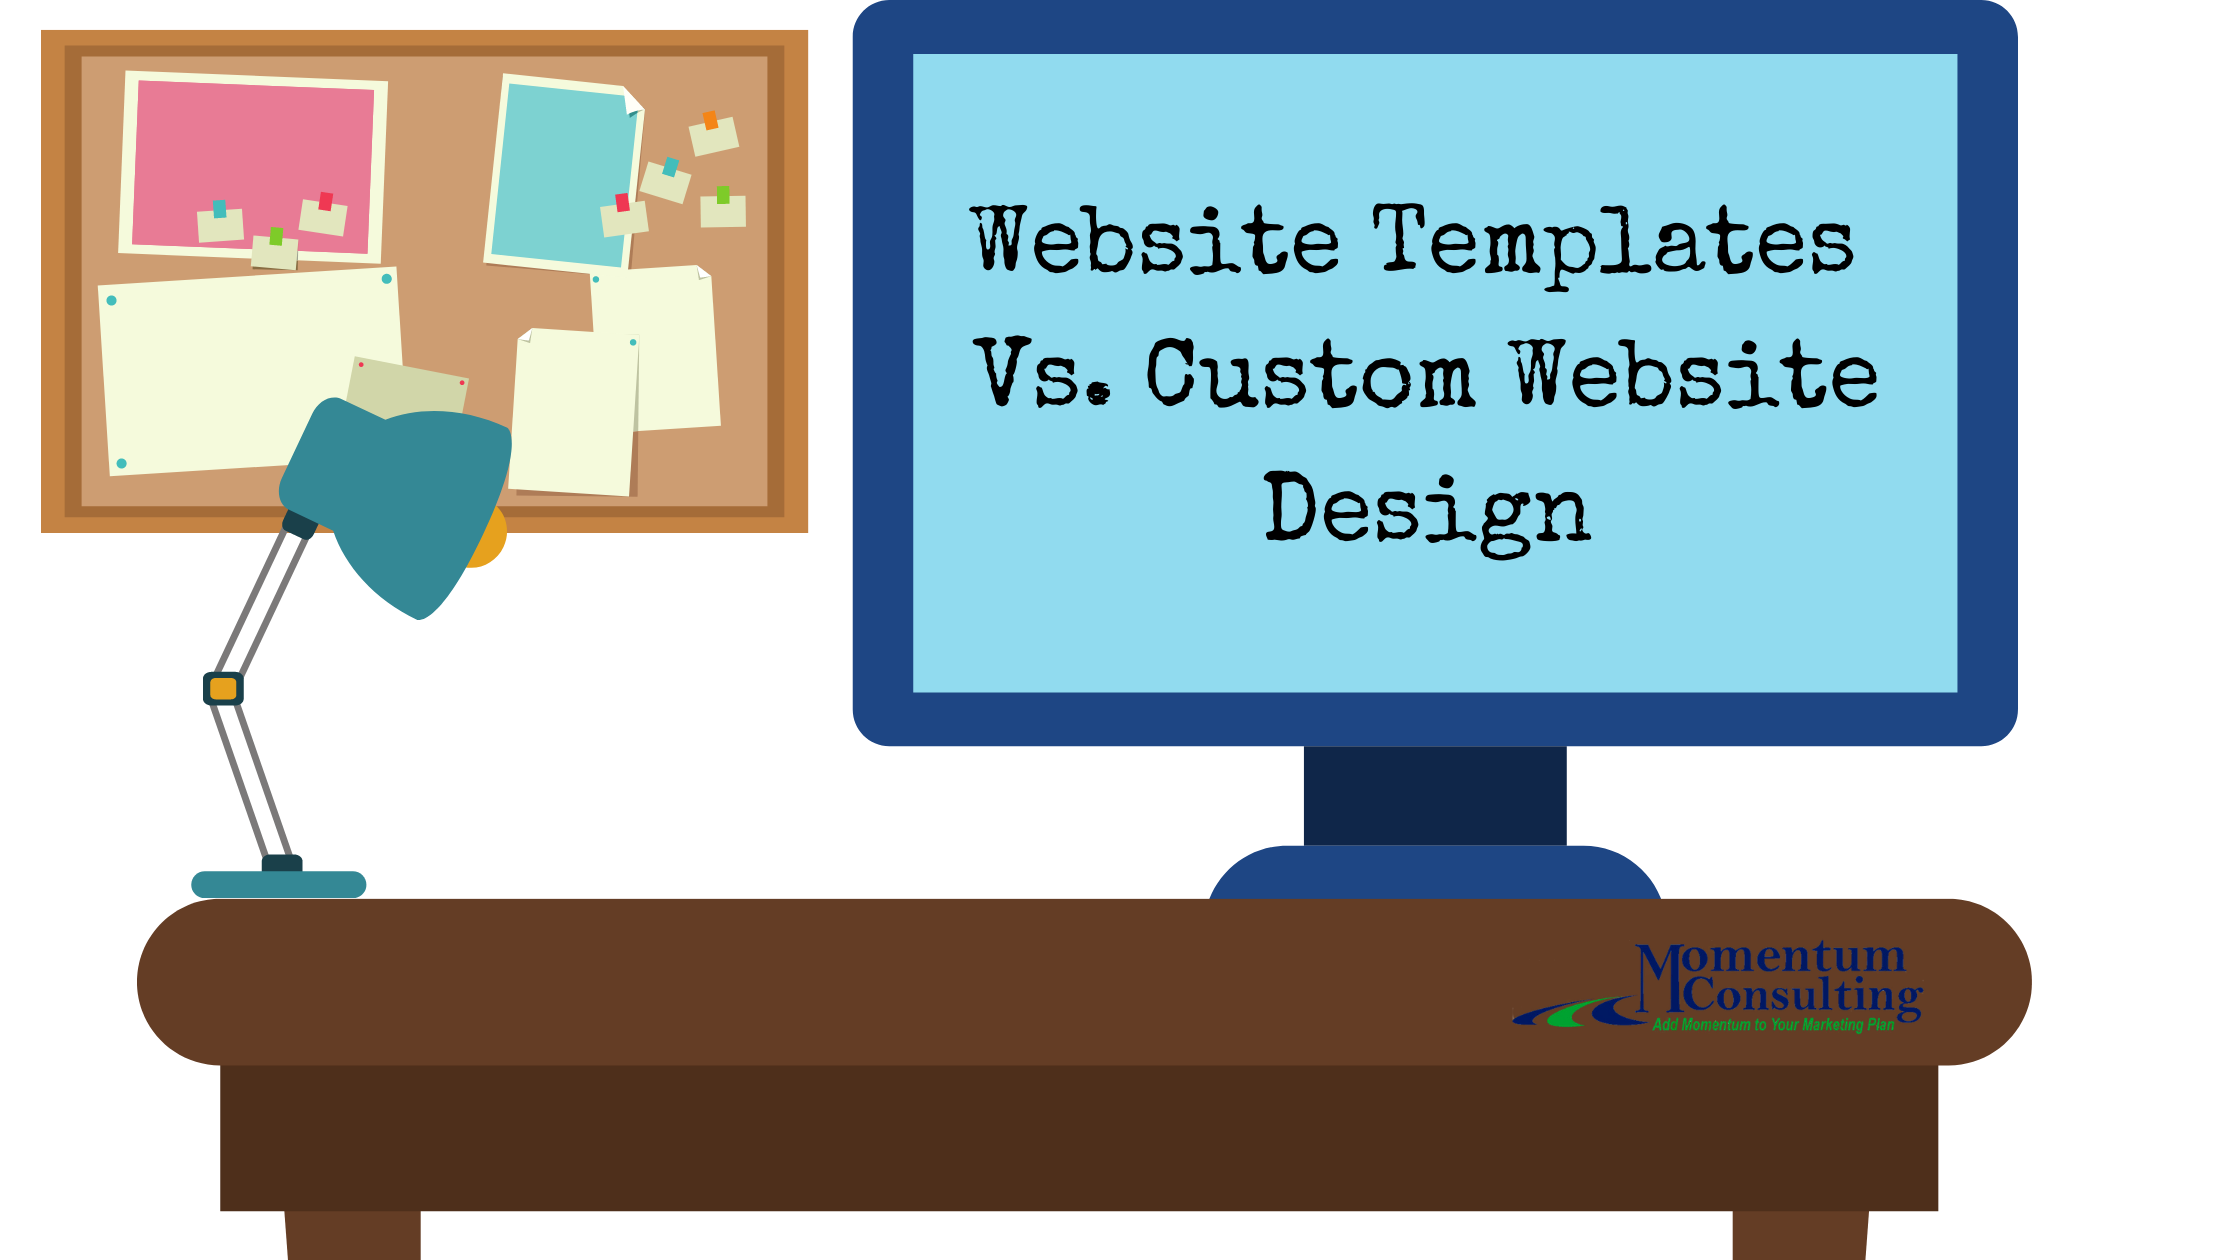 Website Templates Vs. Custom Website Design